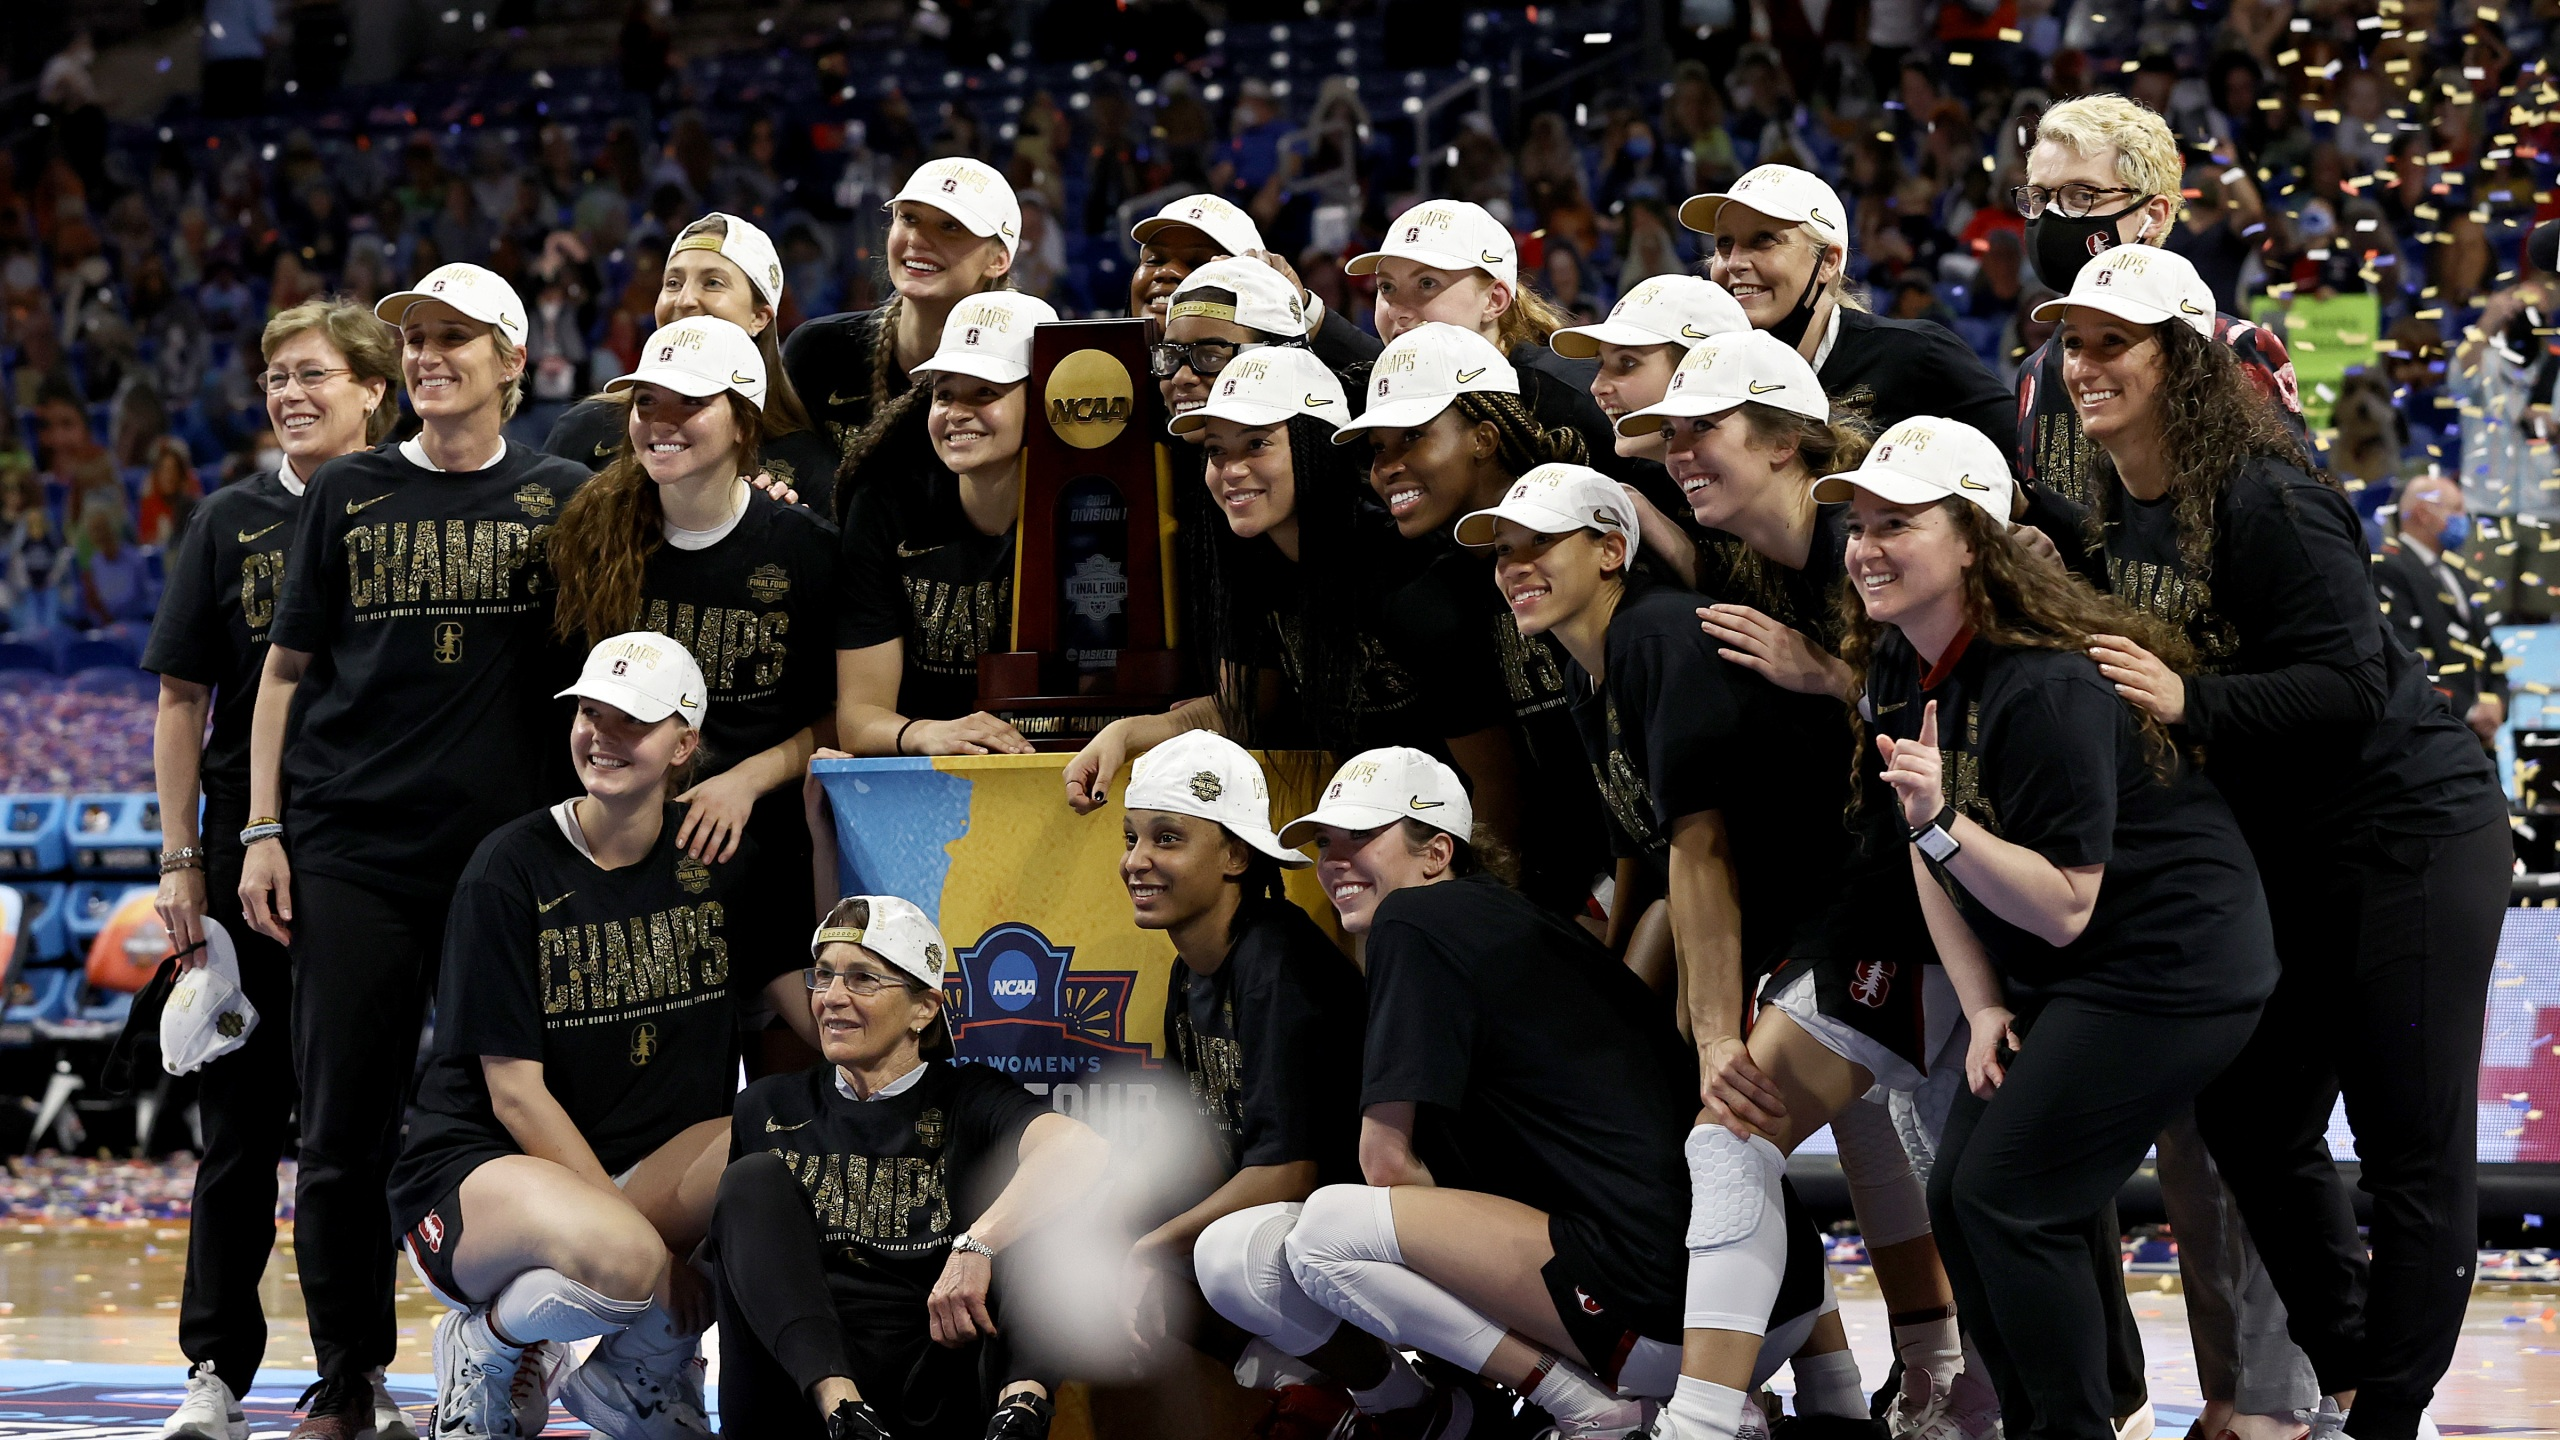 Members of the Stanford Cardinals celebrate a win against the Arizona Wildcats in the National Championship game of the 2021 NCAA Women's Basketball Tournament at the Alamodome on April 04, 2021 in San Antonio, Texas. (Elsa/Getty Images)